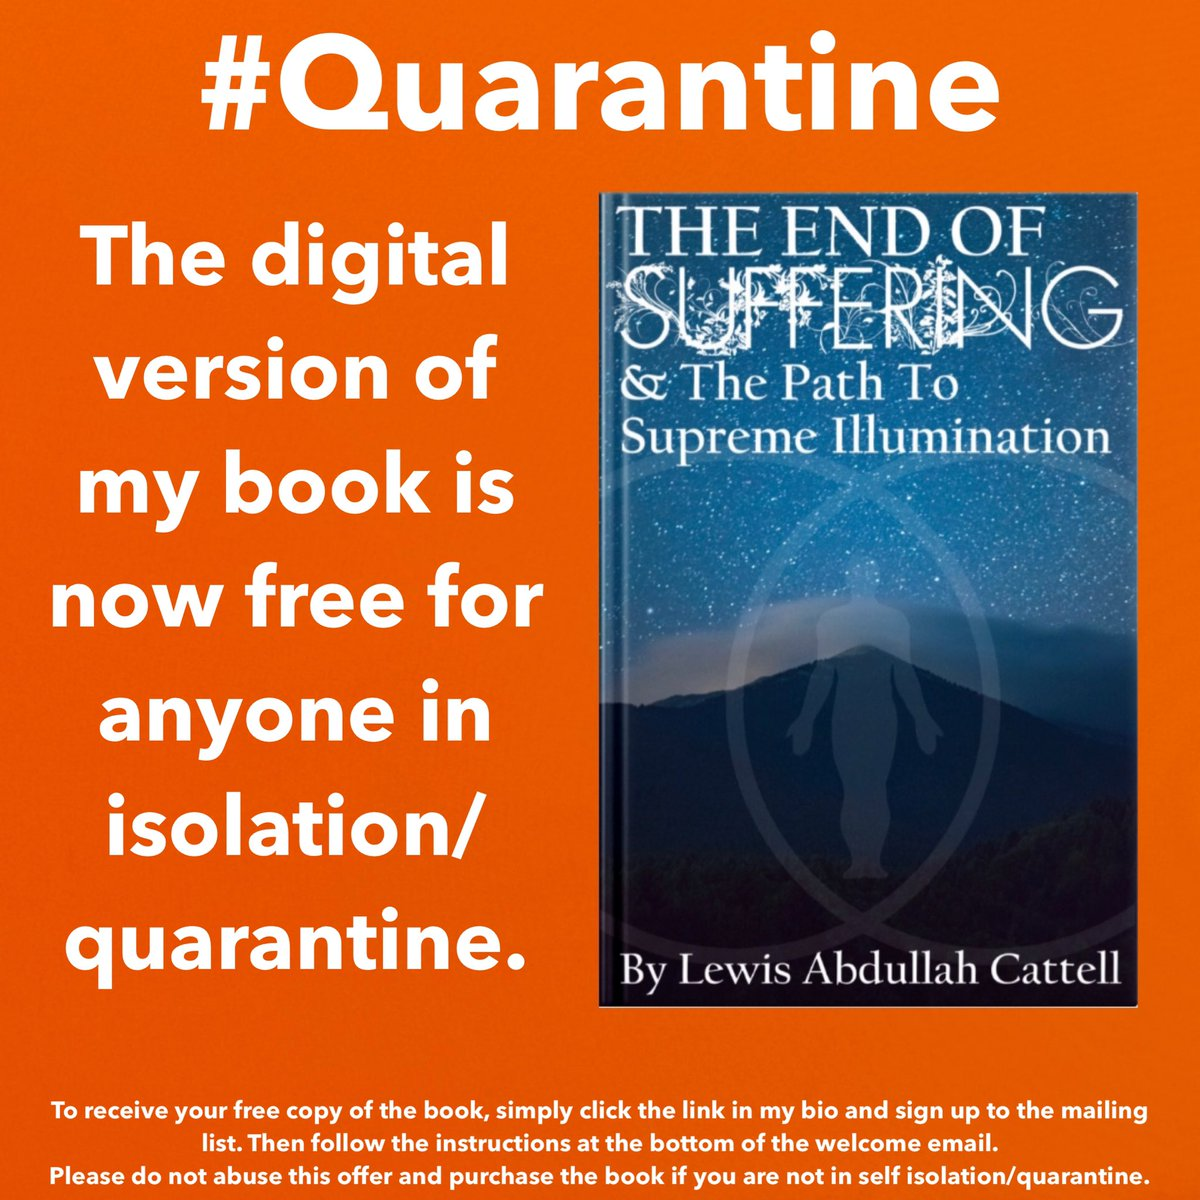 @itzmarkmarquez My book is free for anyone in quarantine (link in bio)